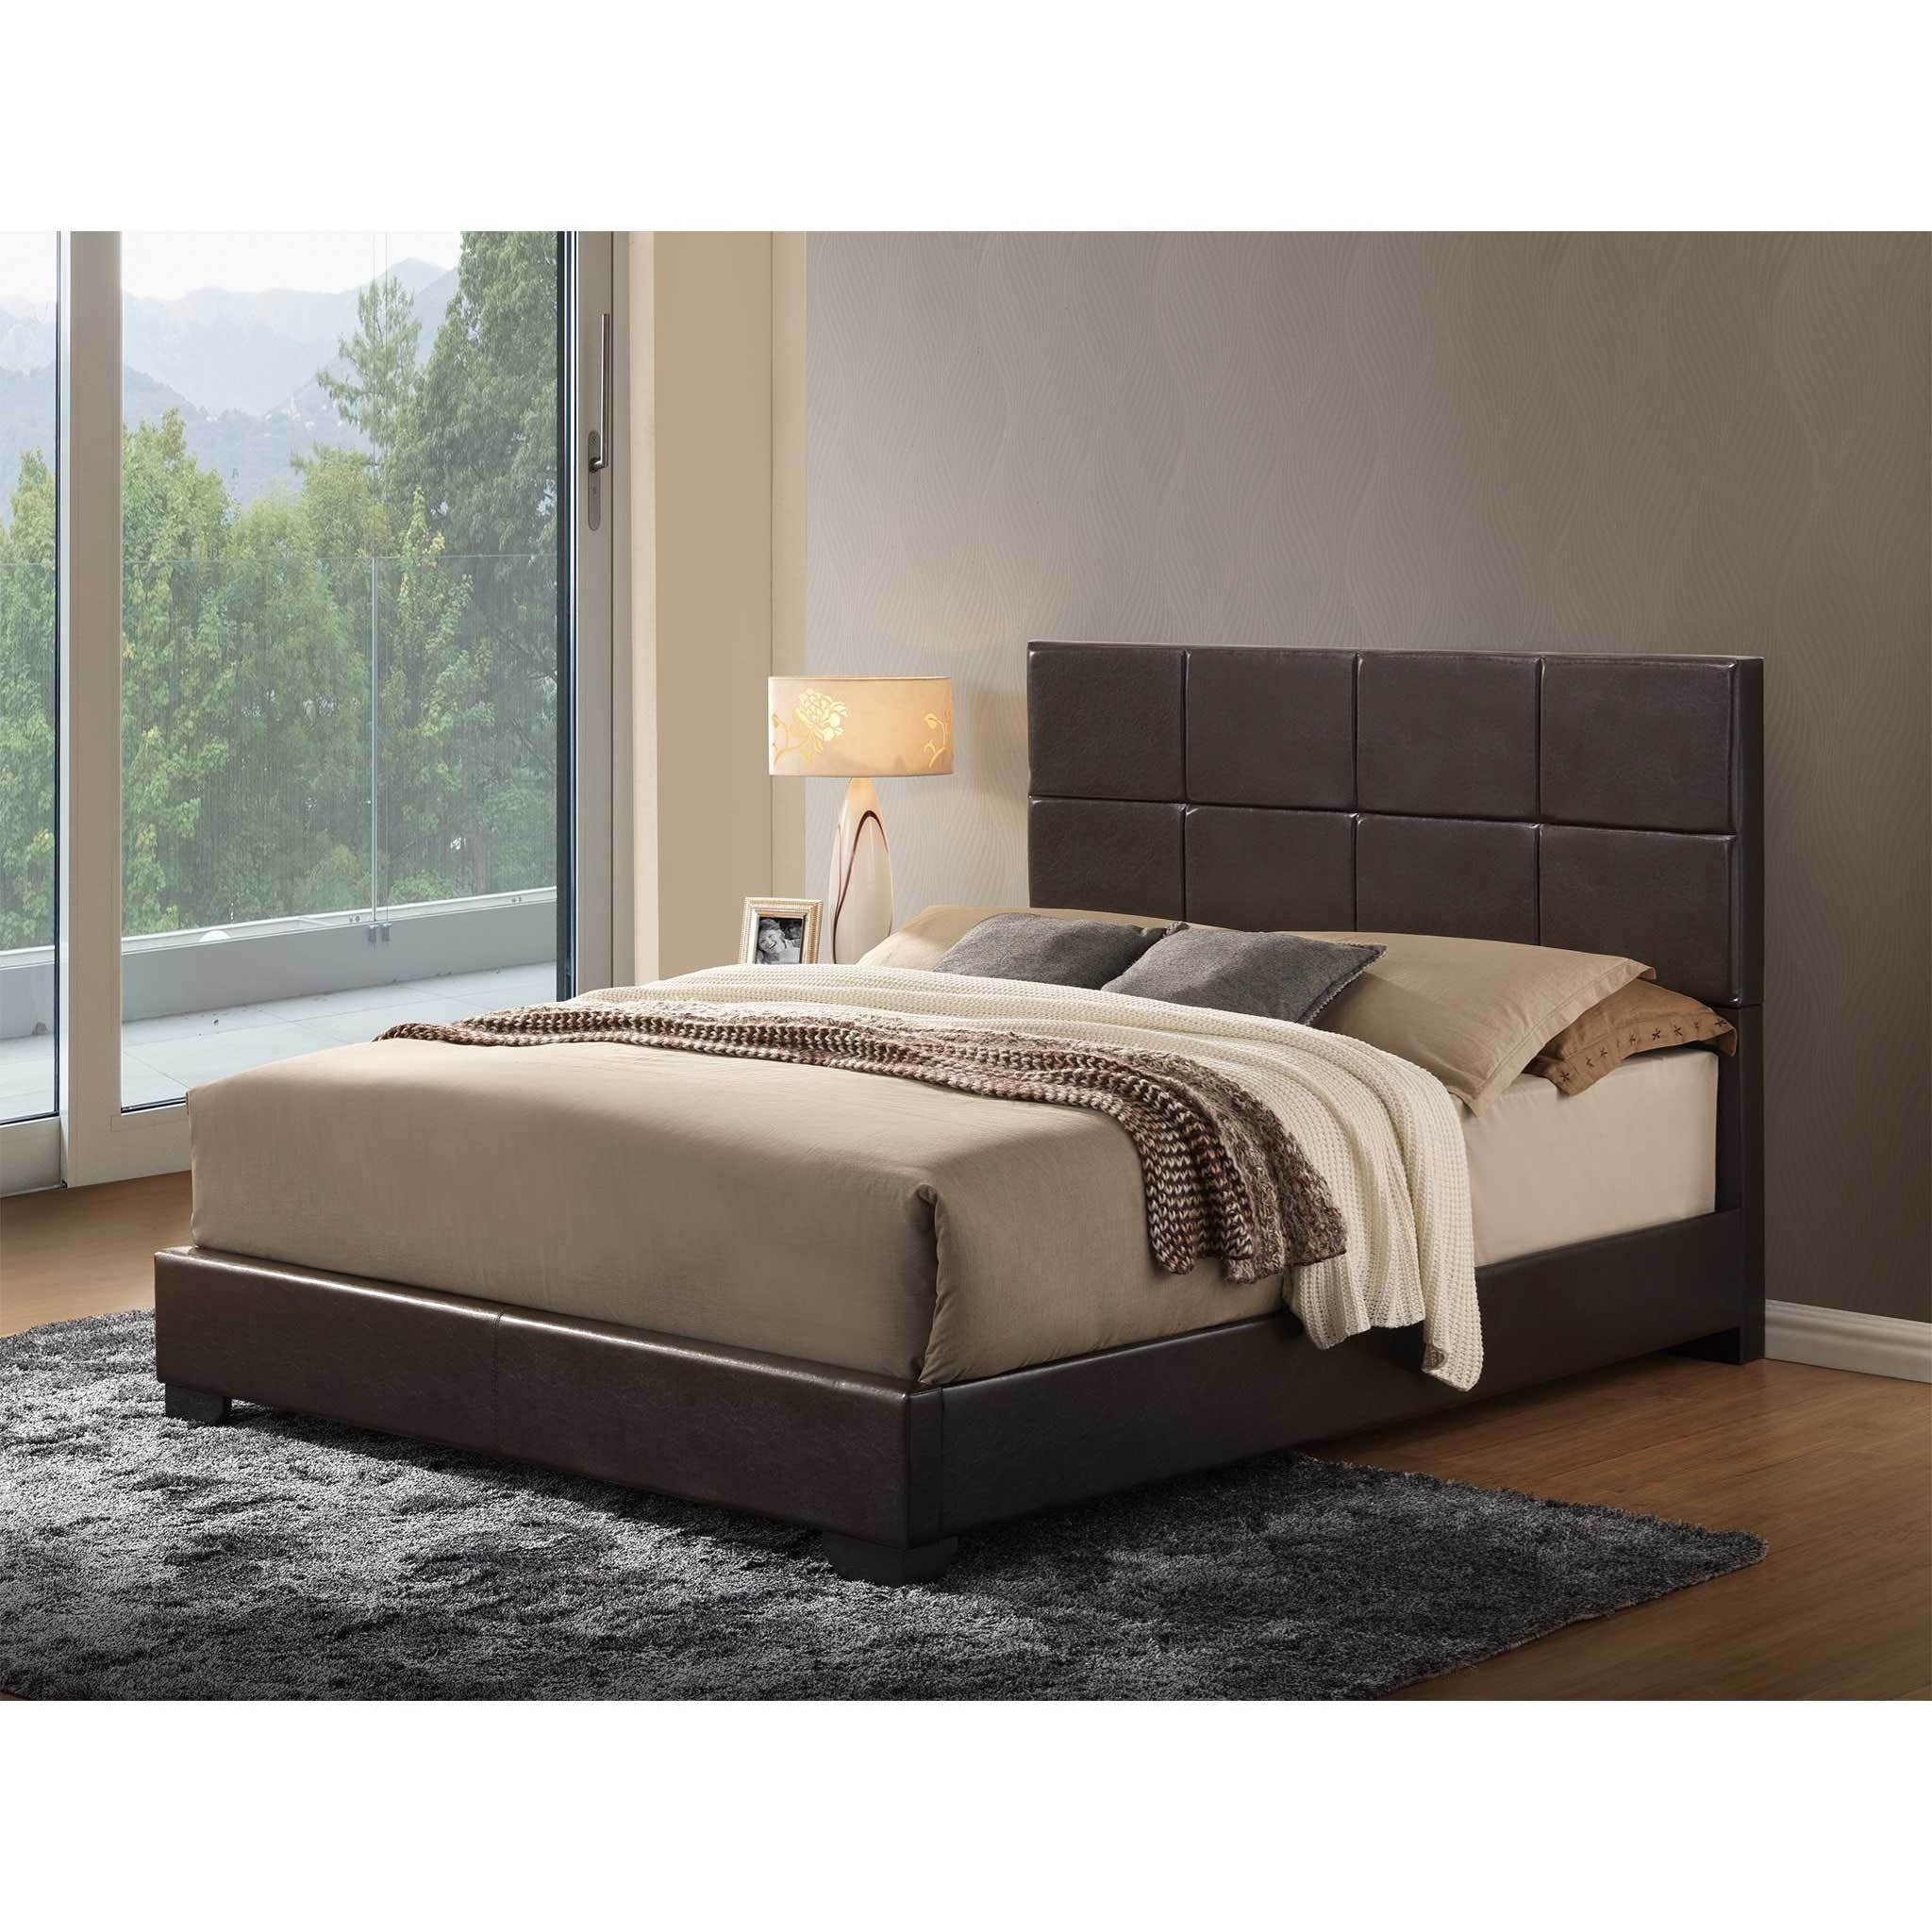 8566 Upholstered Full Bed by Global Furniture at Dream Home Interiors